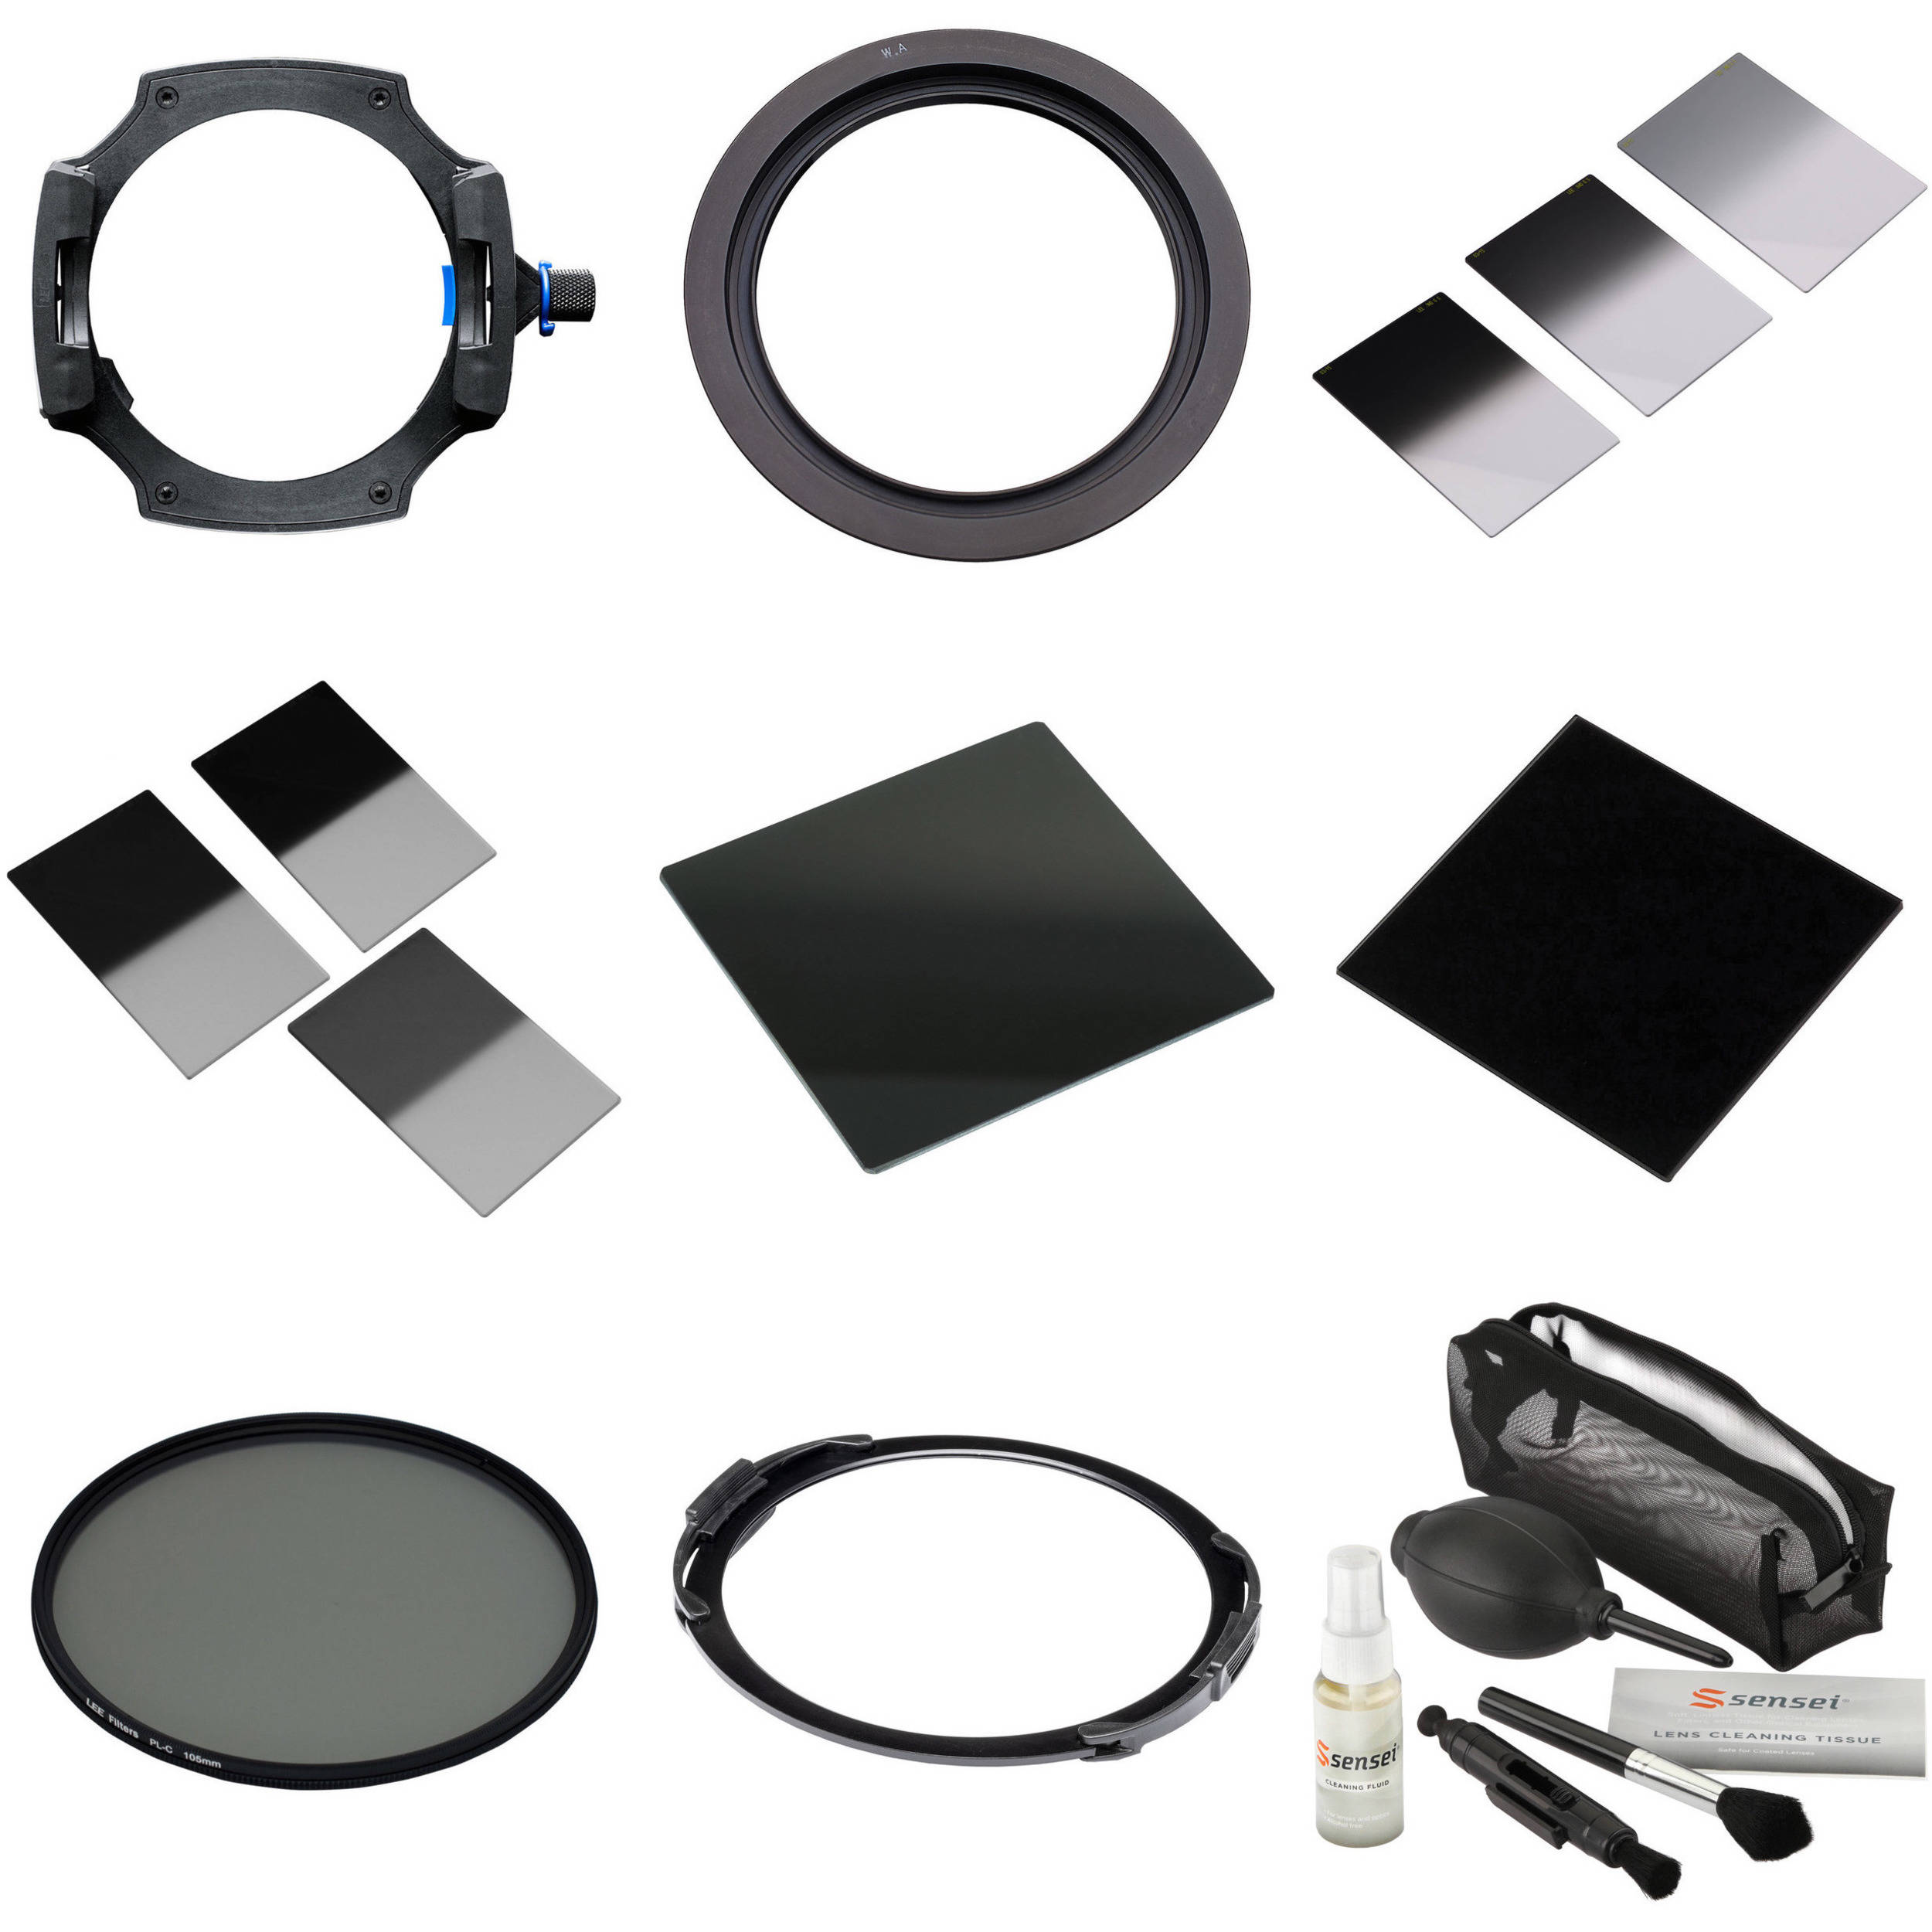 Lee Filters 100mm System Kit With 77mm Wide Angle Lens Adapter Double Slotted Hood Ring Solid Neutral